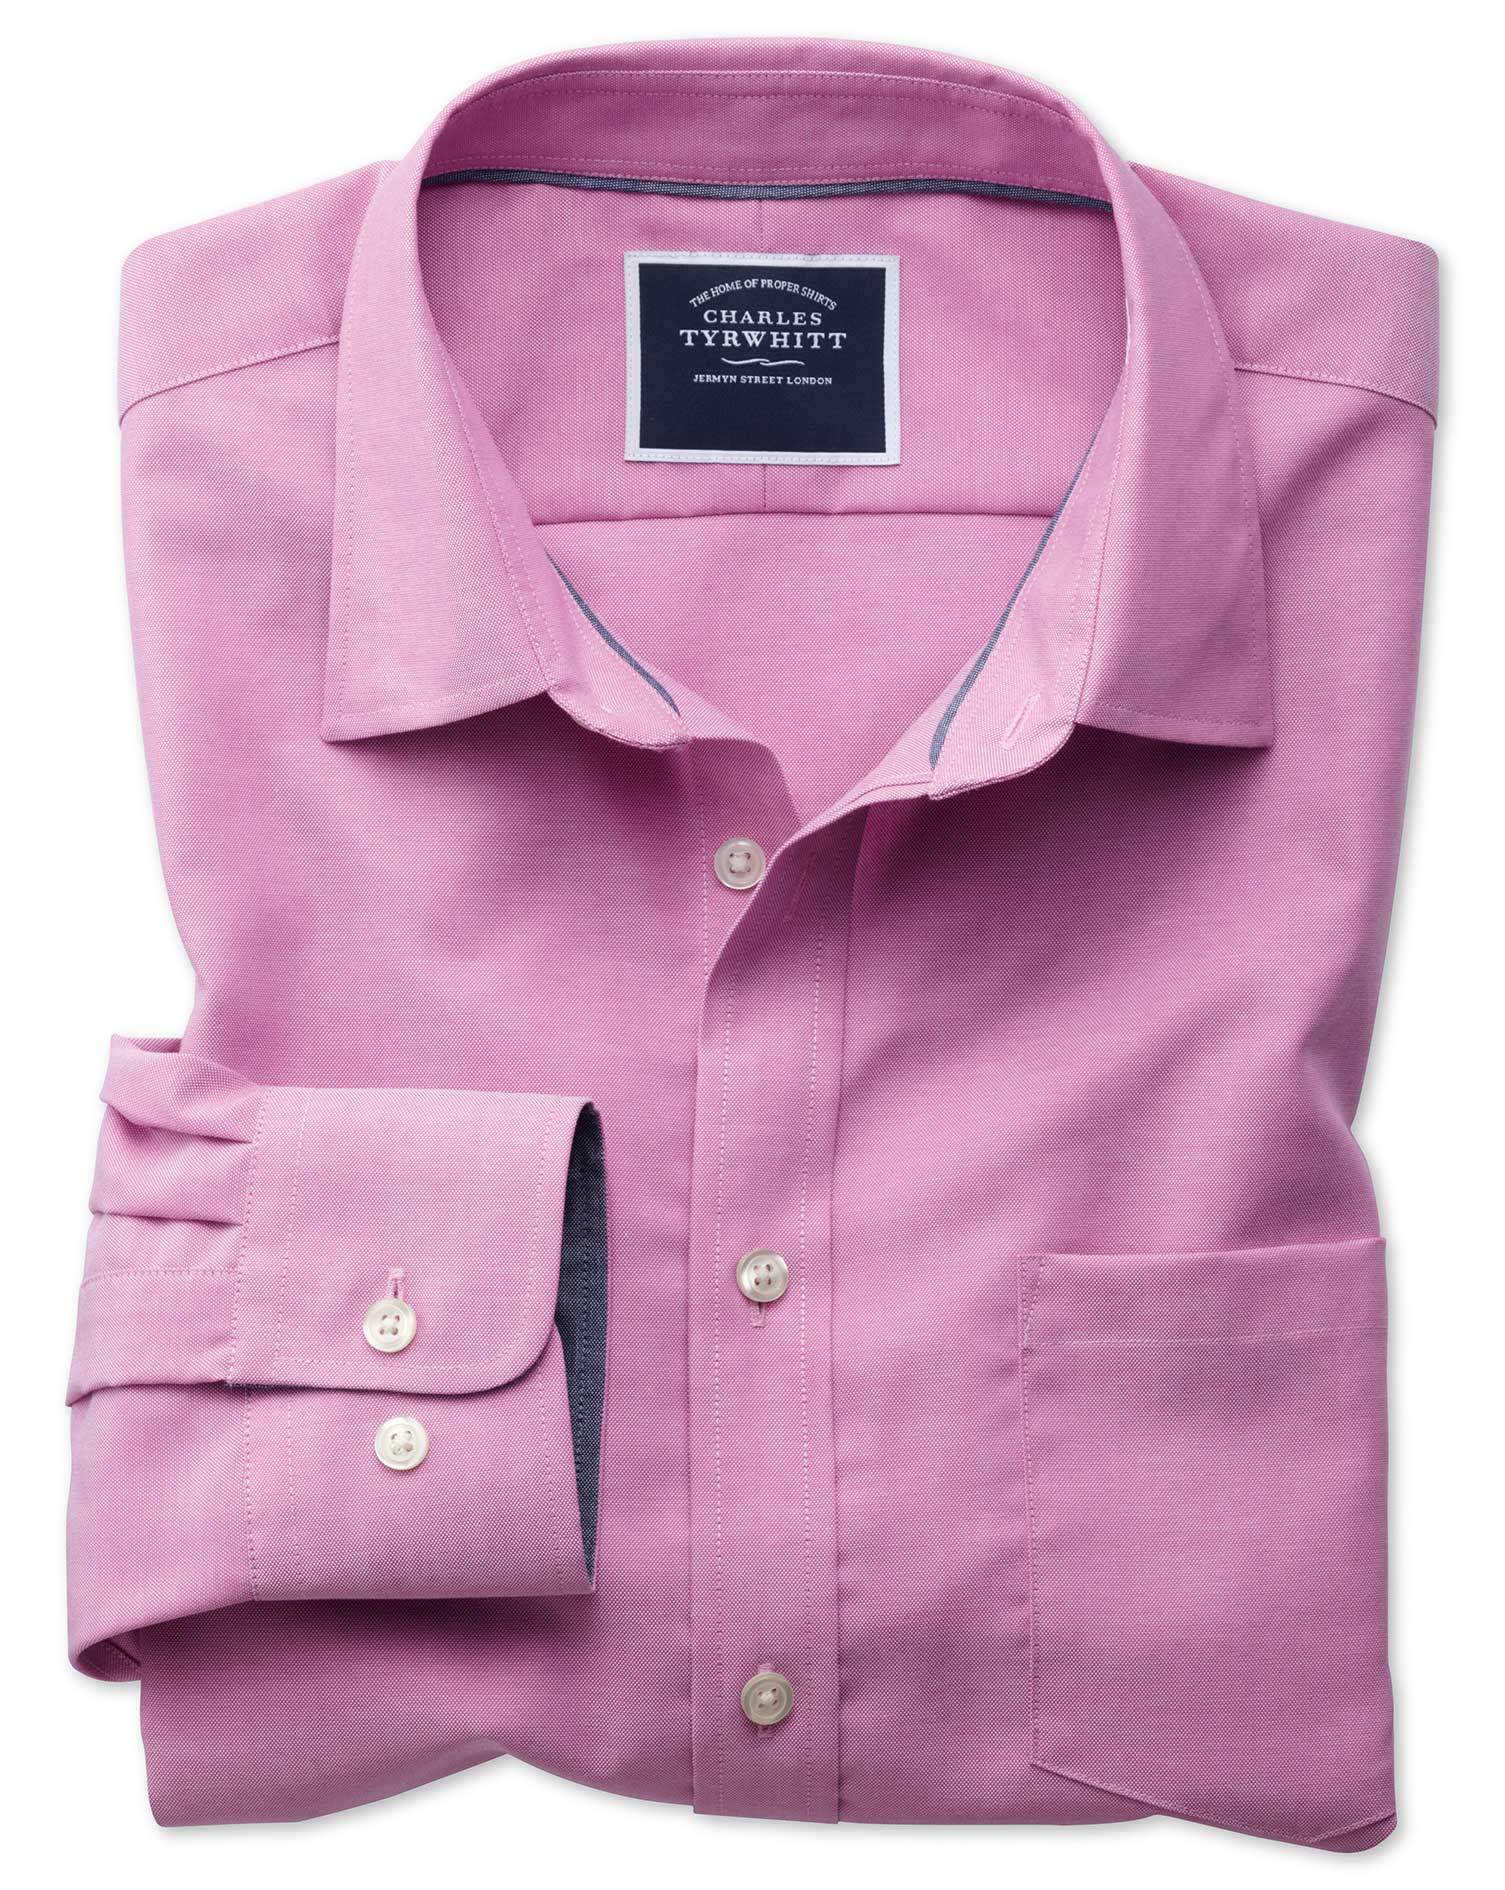 Classic Fit Non-Iron Oxford Dark Pink Plain Cotton Shirt Single Cuff Size Large by Charles Tyrwhitt